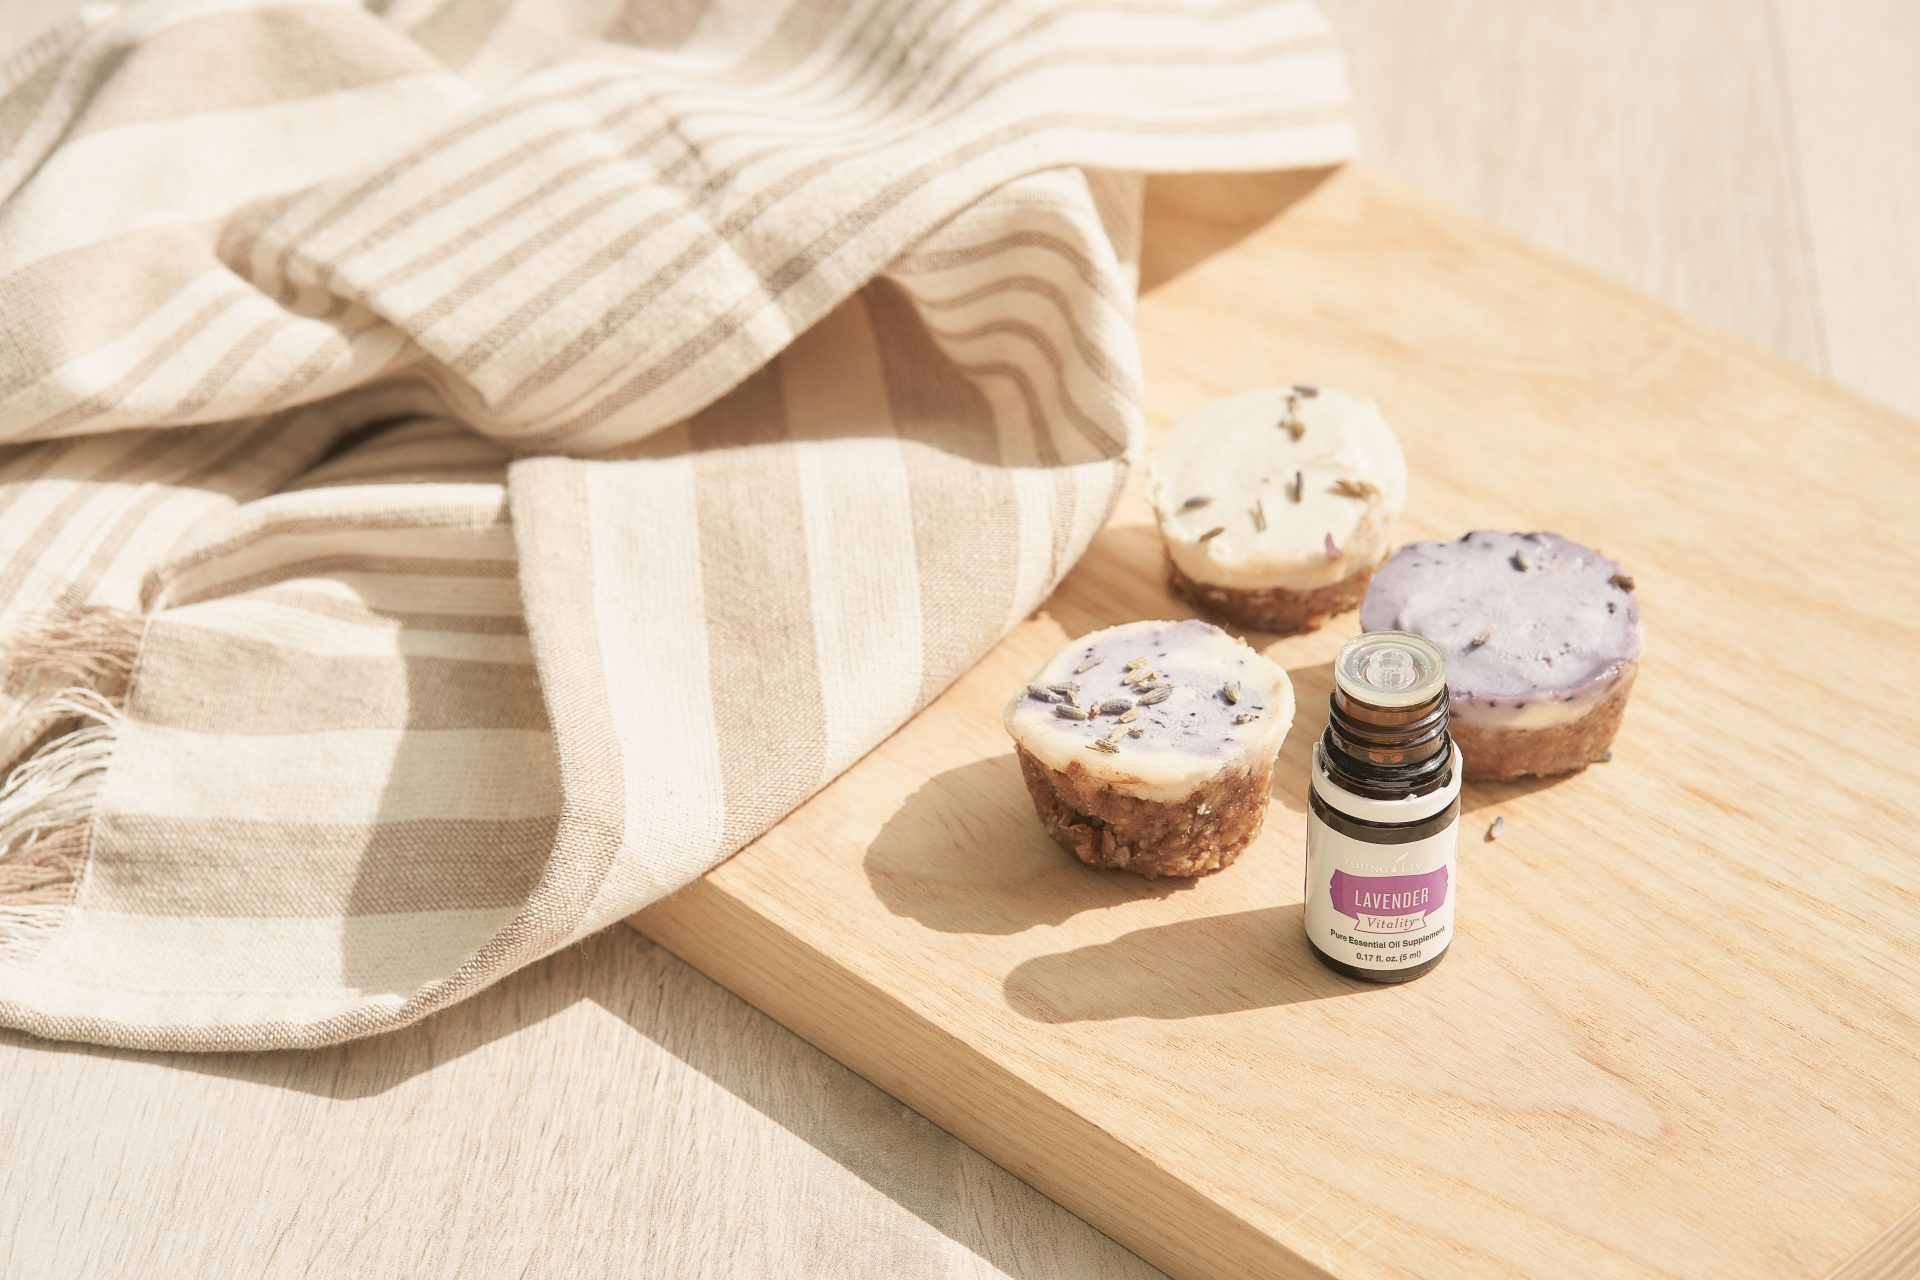 No-bake blueberry-lavender cheesecake - Young Living Lavender Life Blog